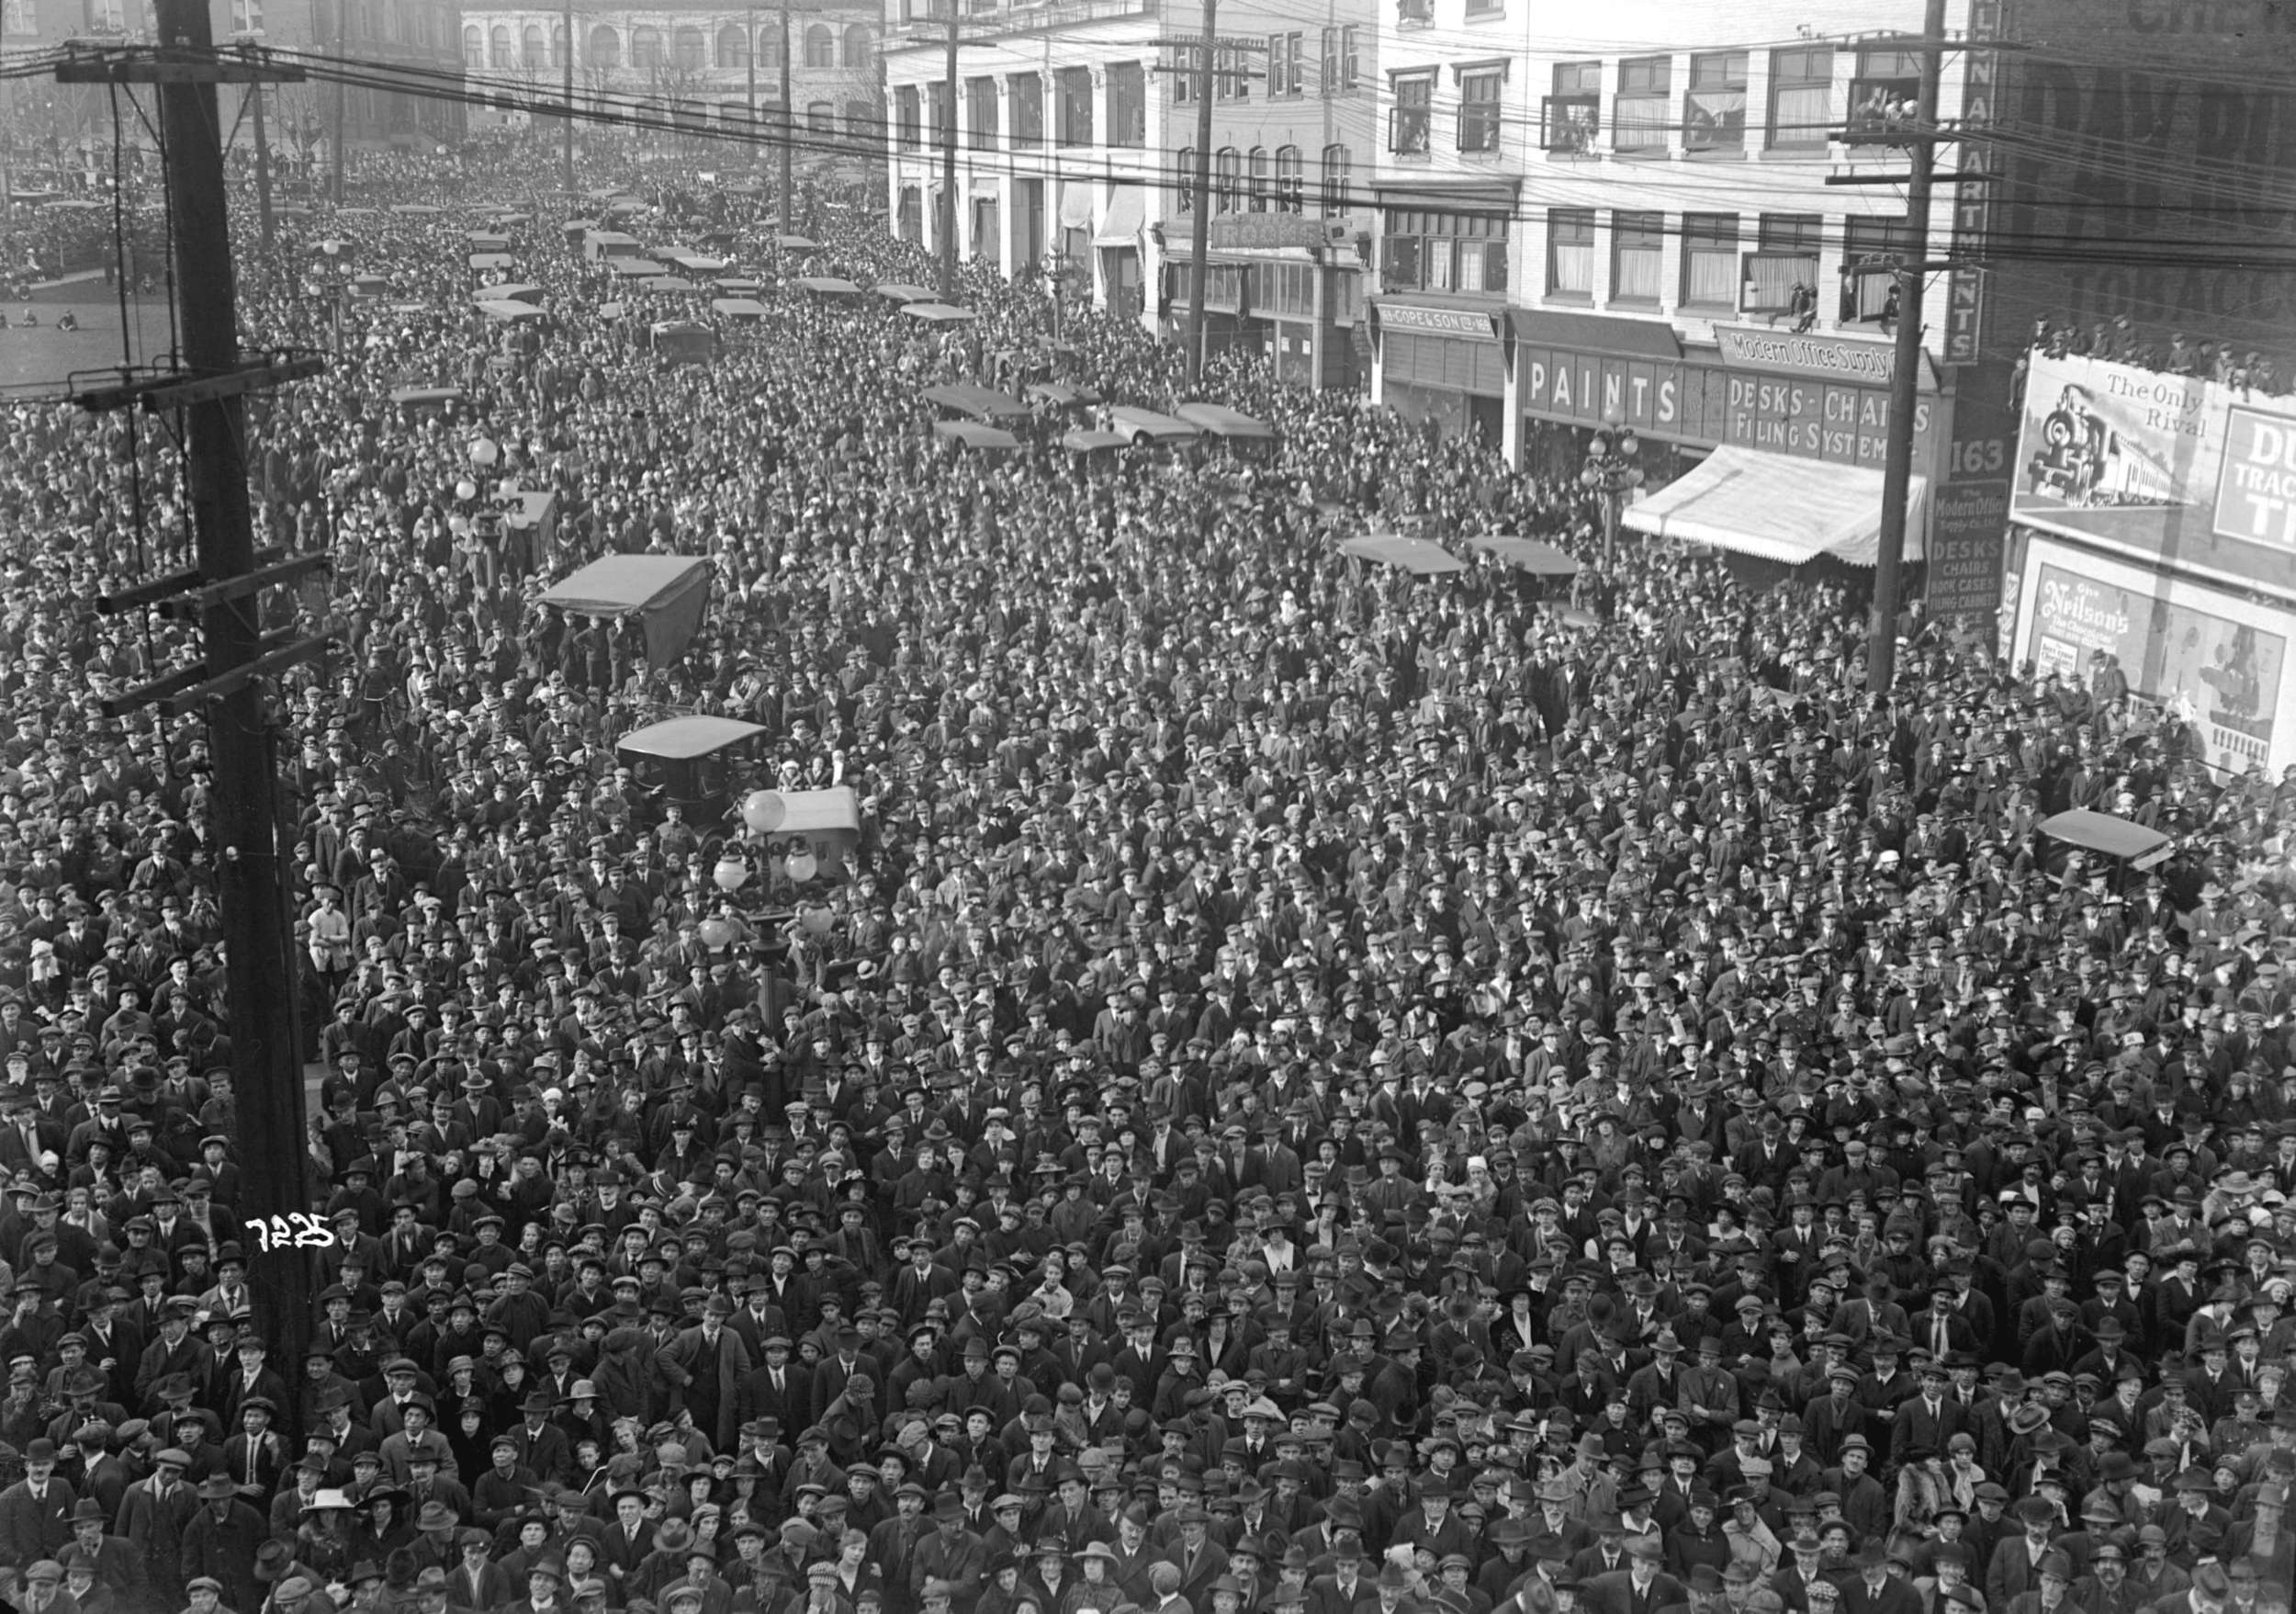 v-an-awsum-street-party-1918-image-courtesy-of-the-vancouver-archives.jpg